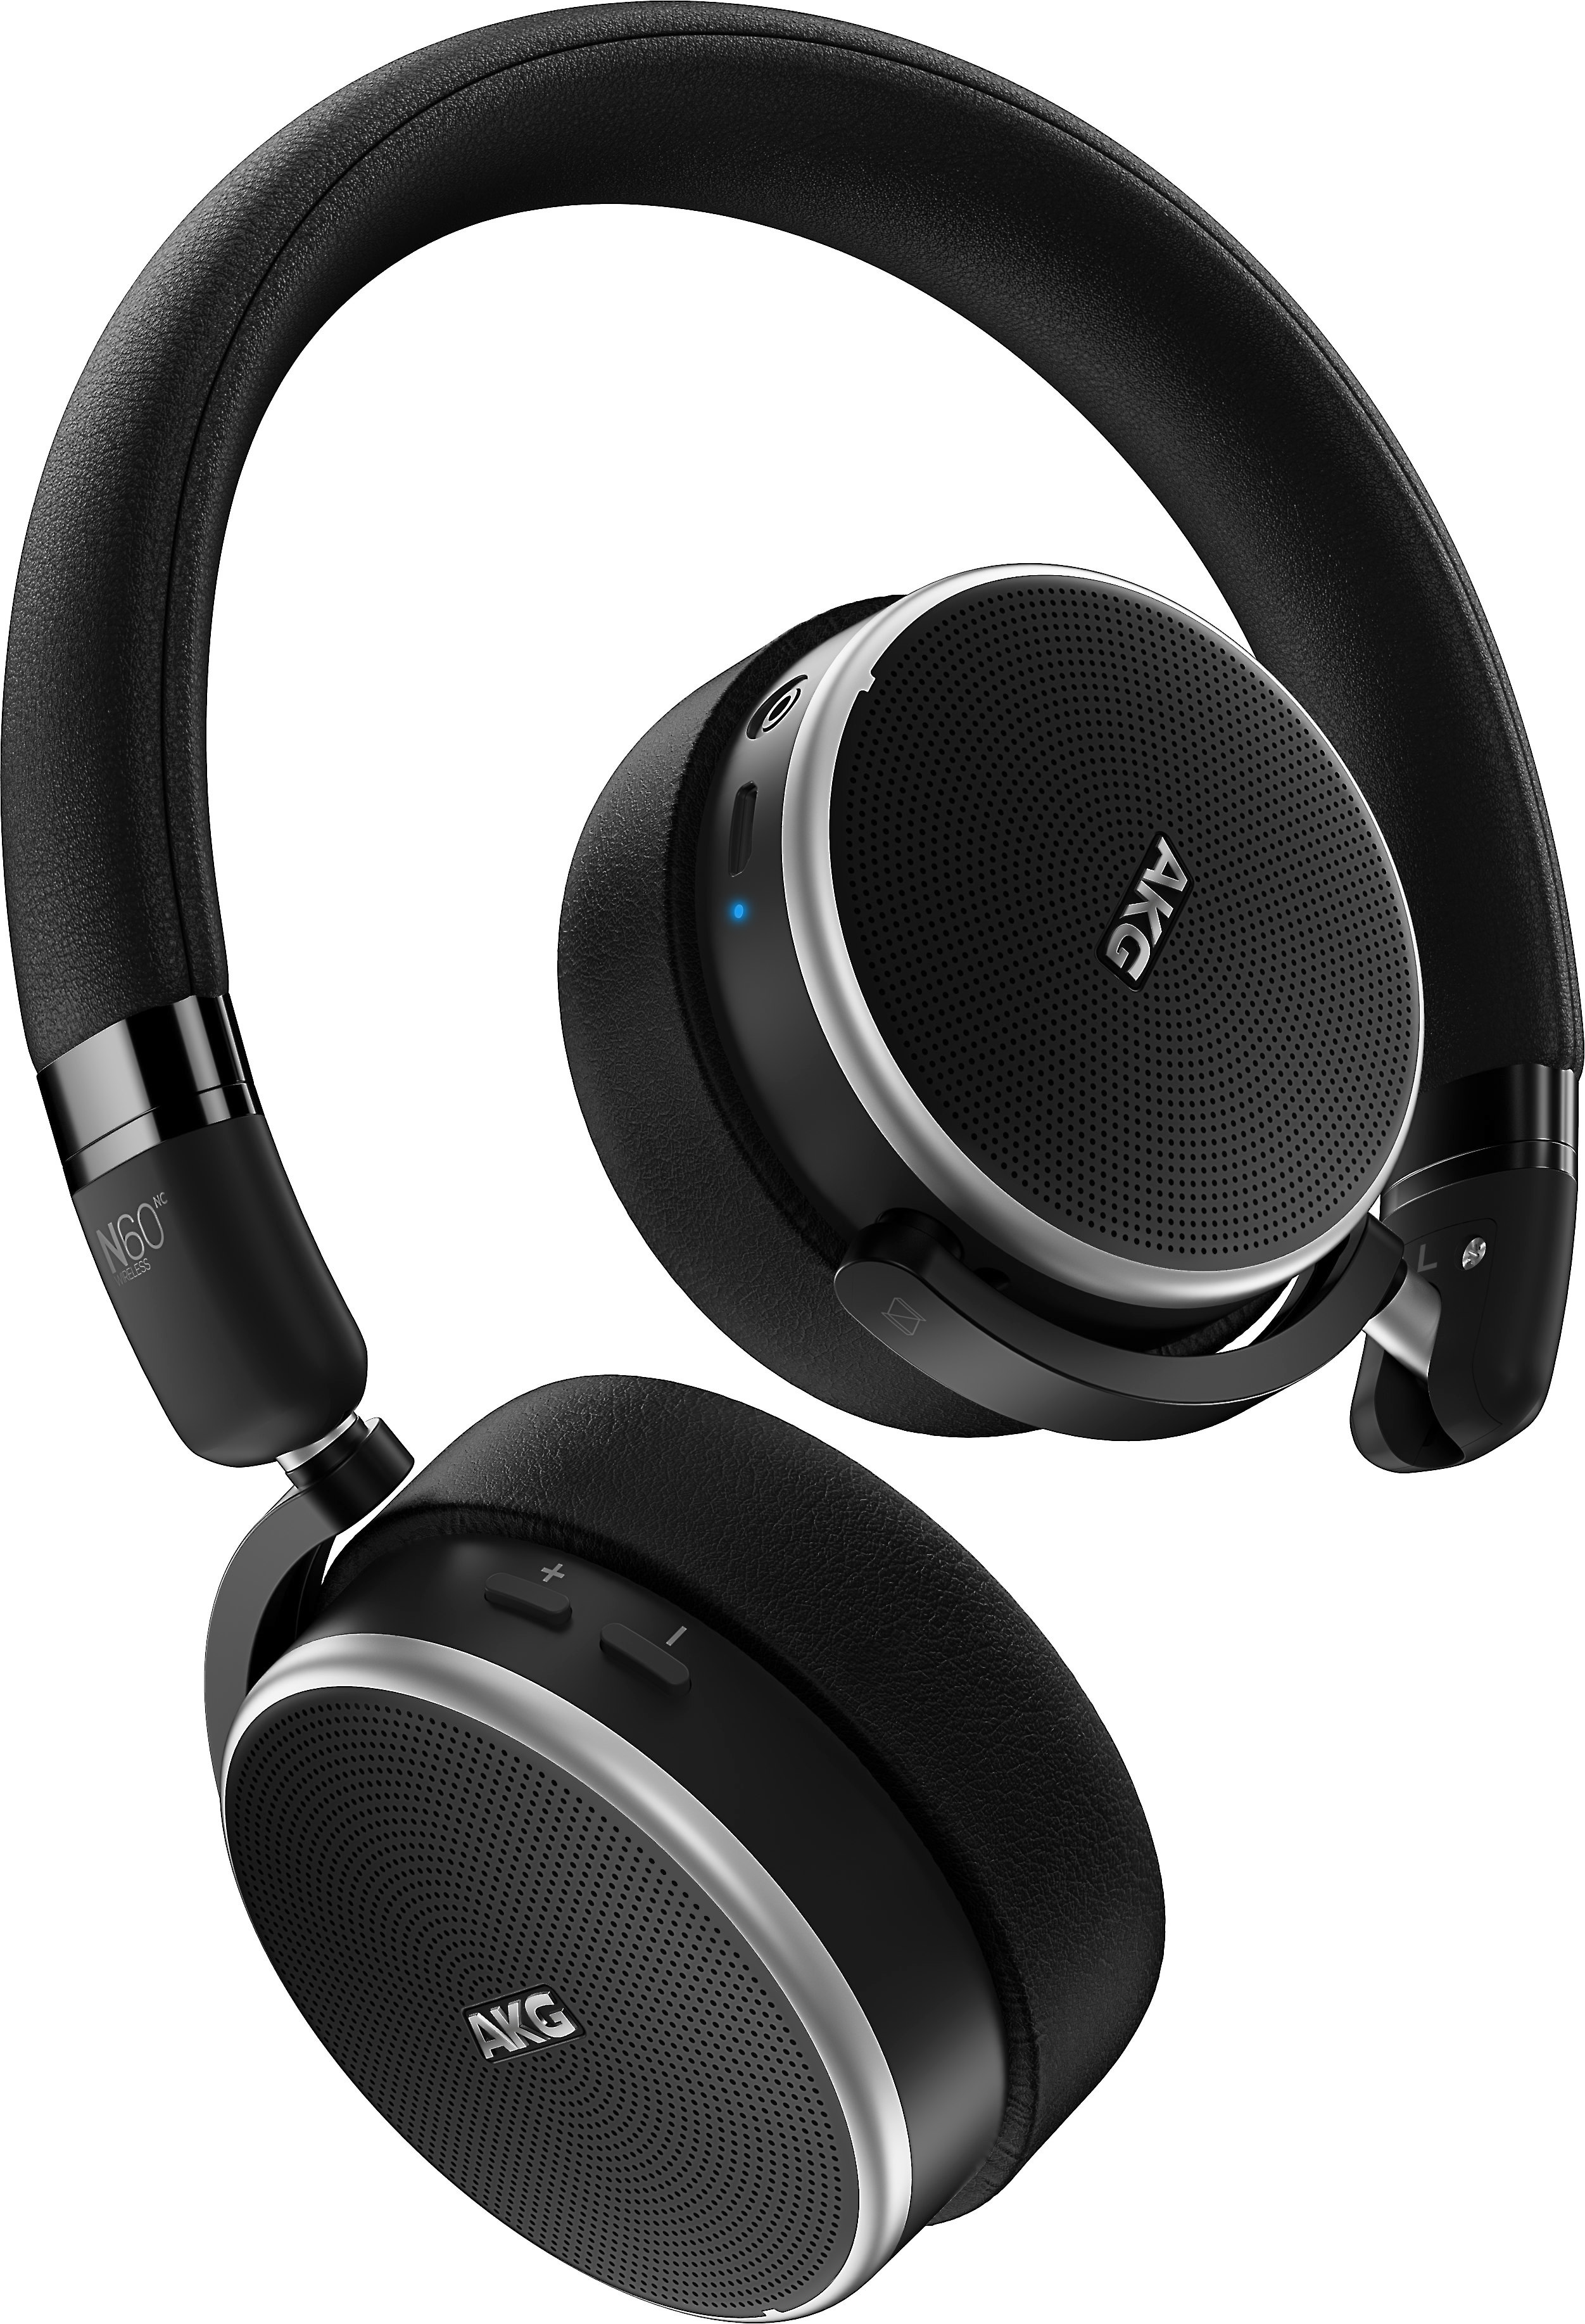 c32f0edf09b AKG N60NC Wireless On-ear Bluetooth® headphones with active noise  cancellation at Crutchfield.com